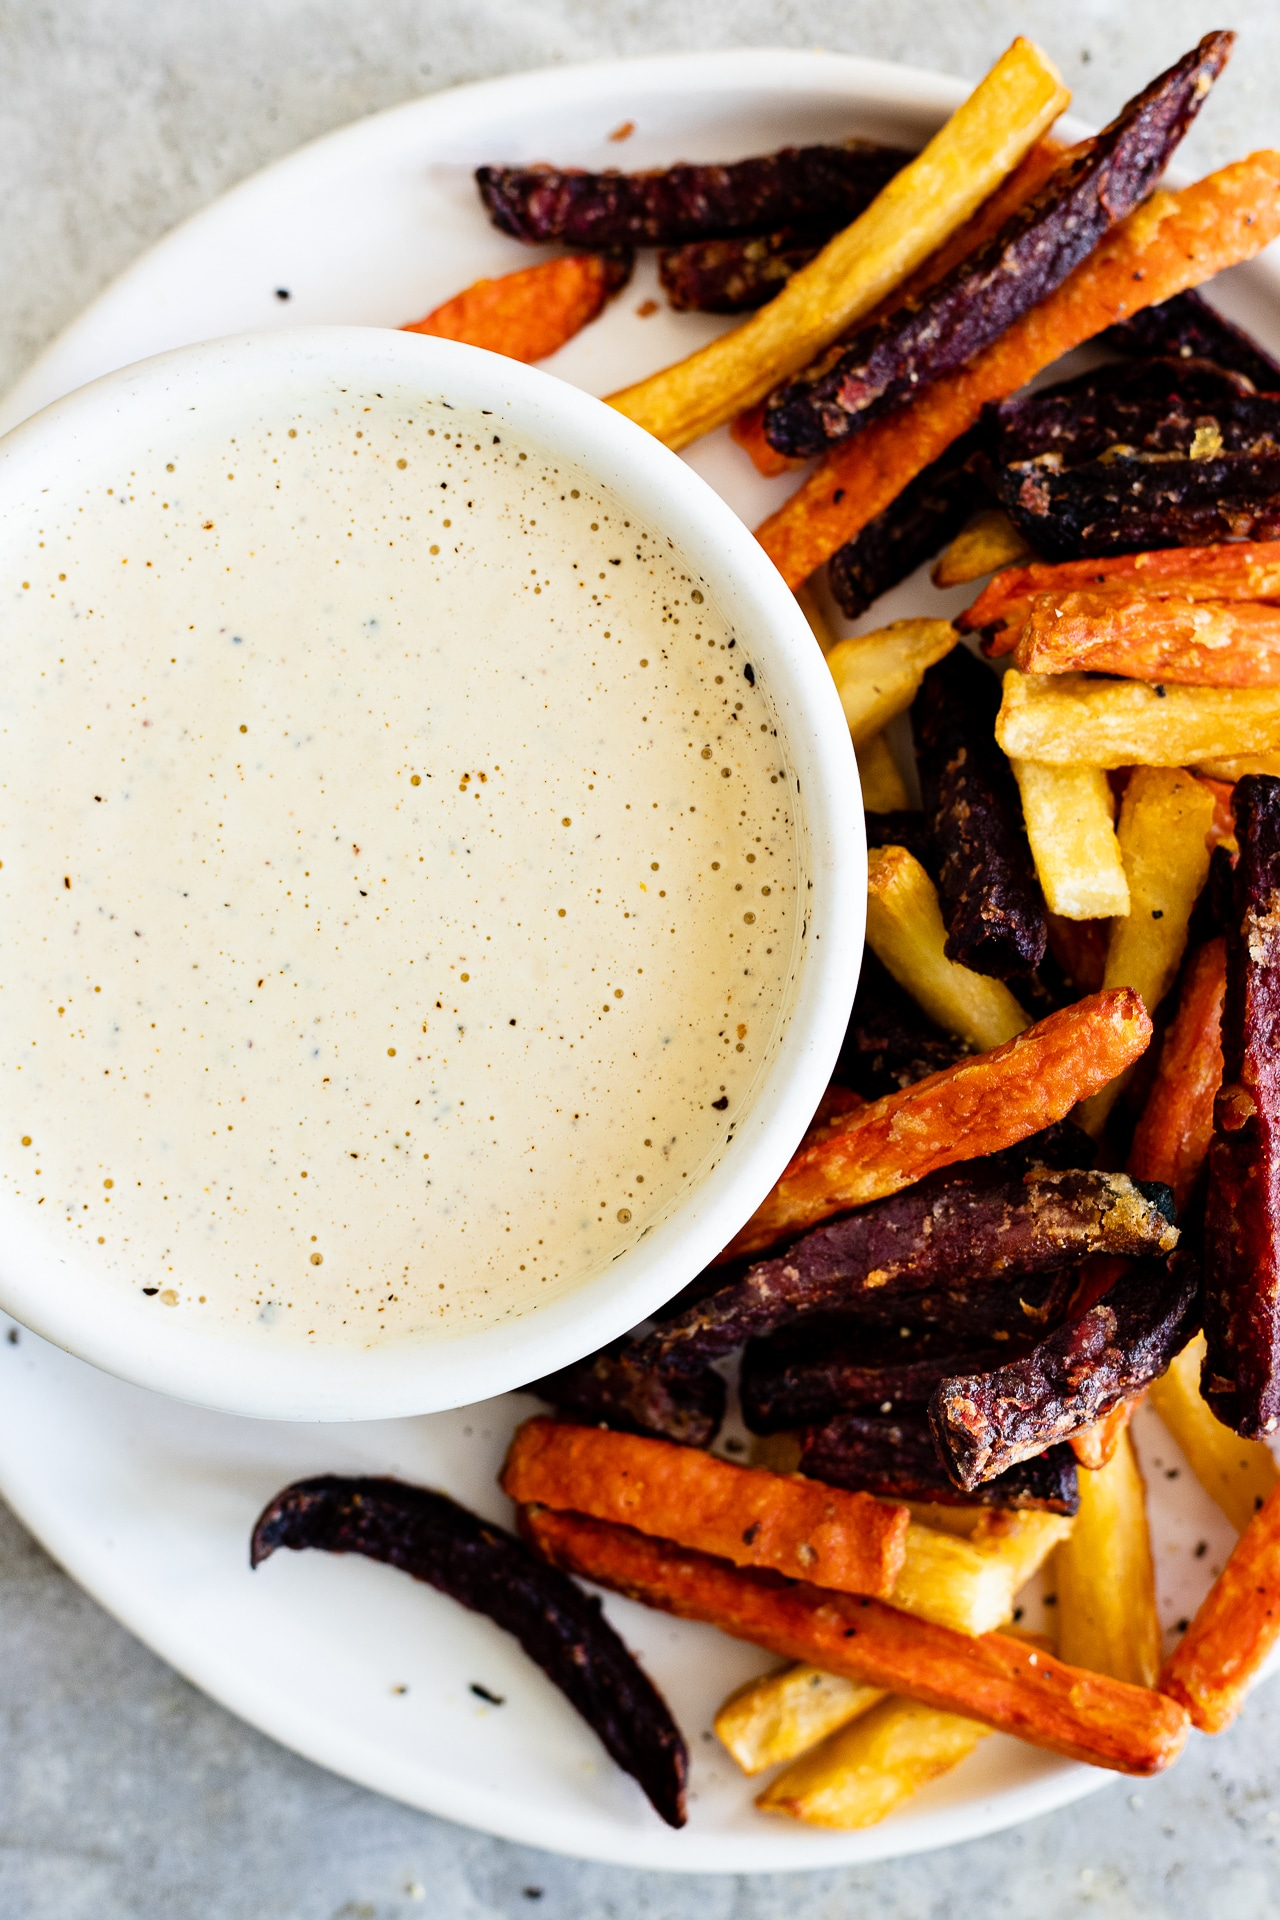 garlic tahini cream sauce with fries